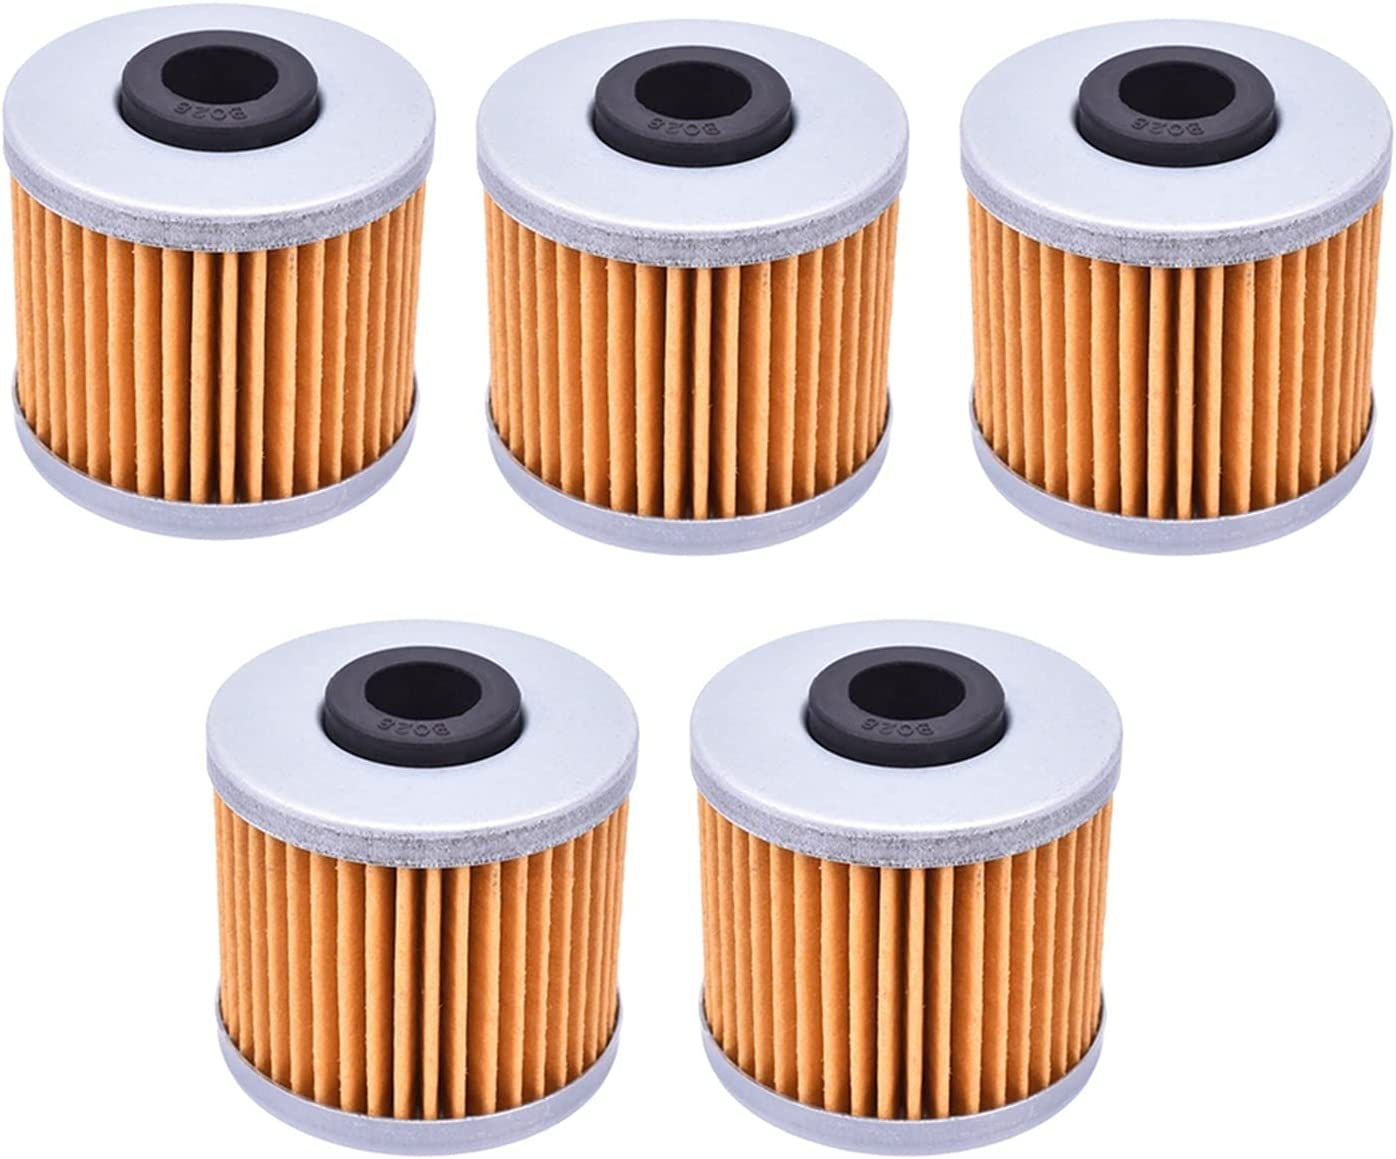 Motorcycle Engine Oil Complete Free Shipping Filter 5Pcs for Import Scoo